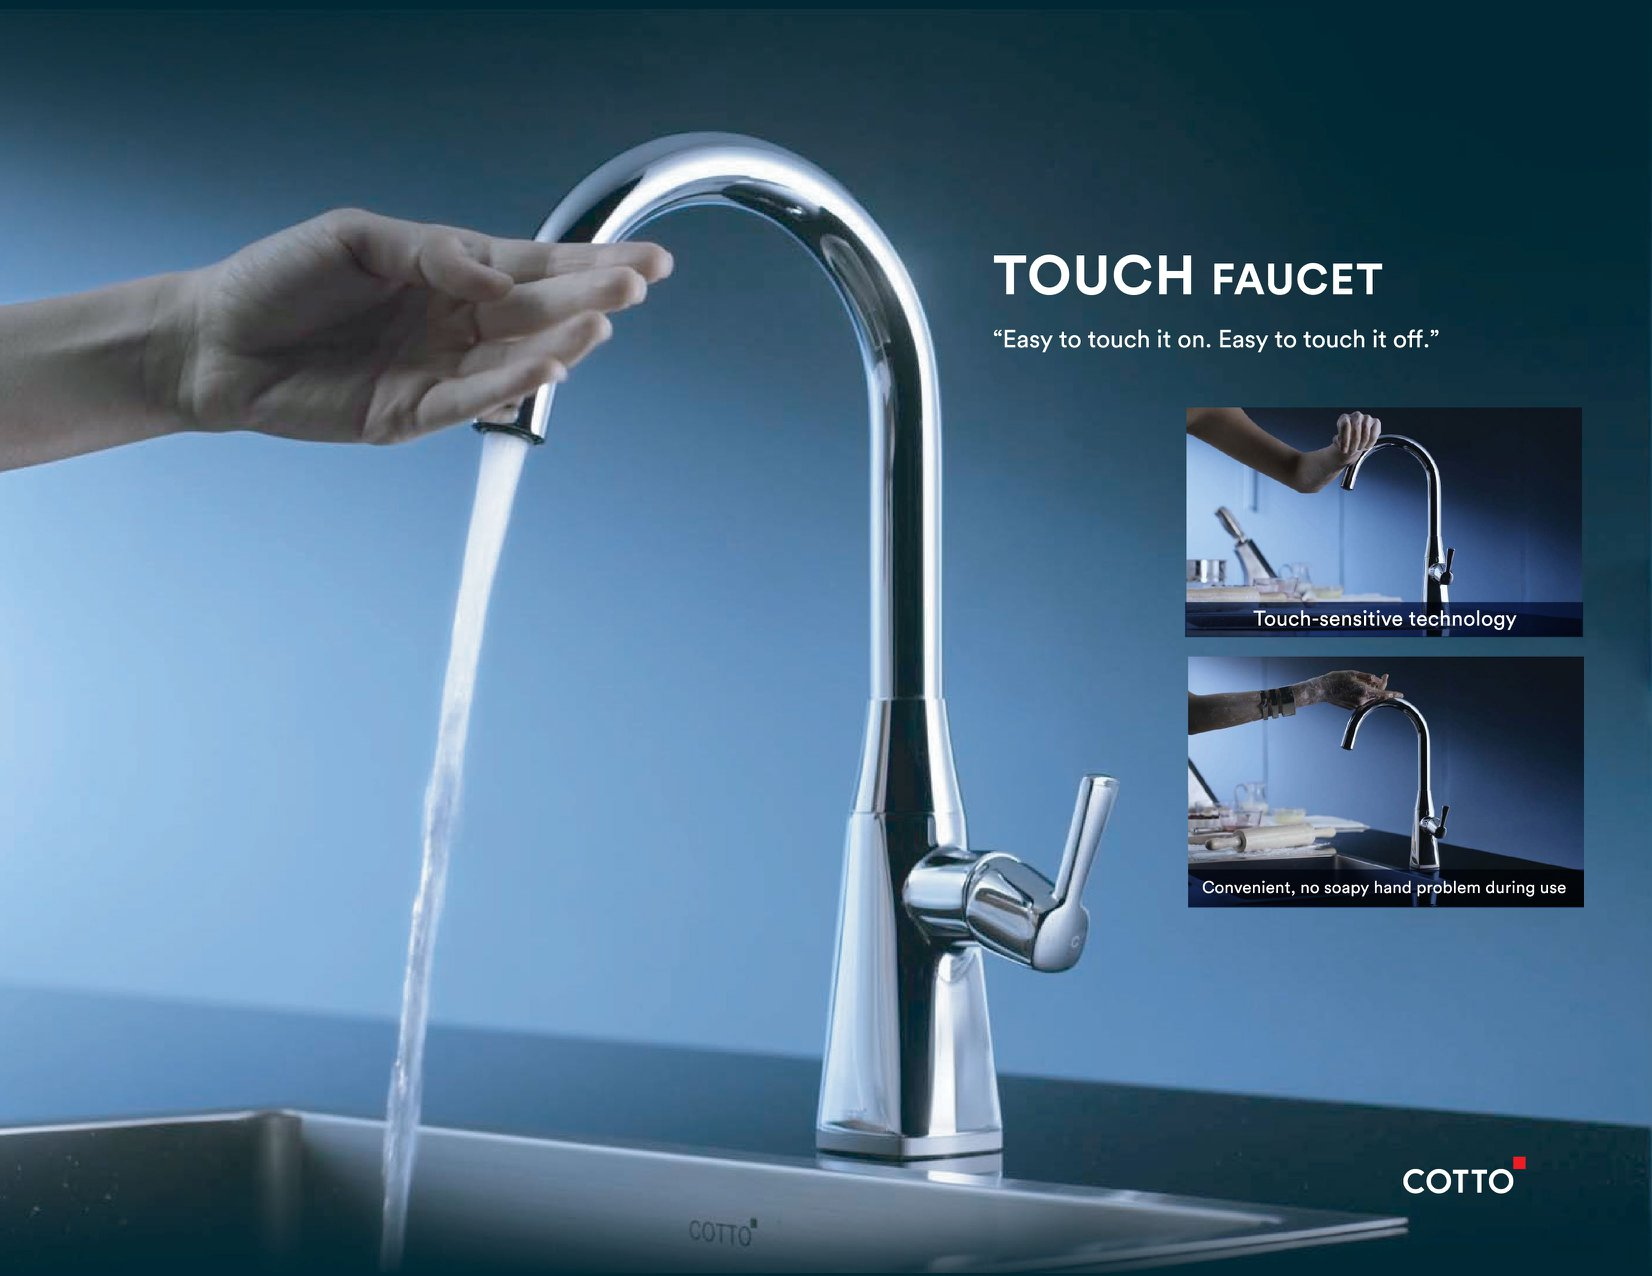 Cotto Touch Faucet